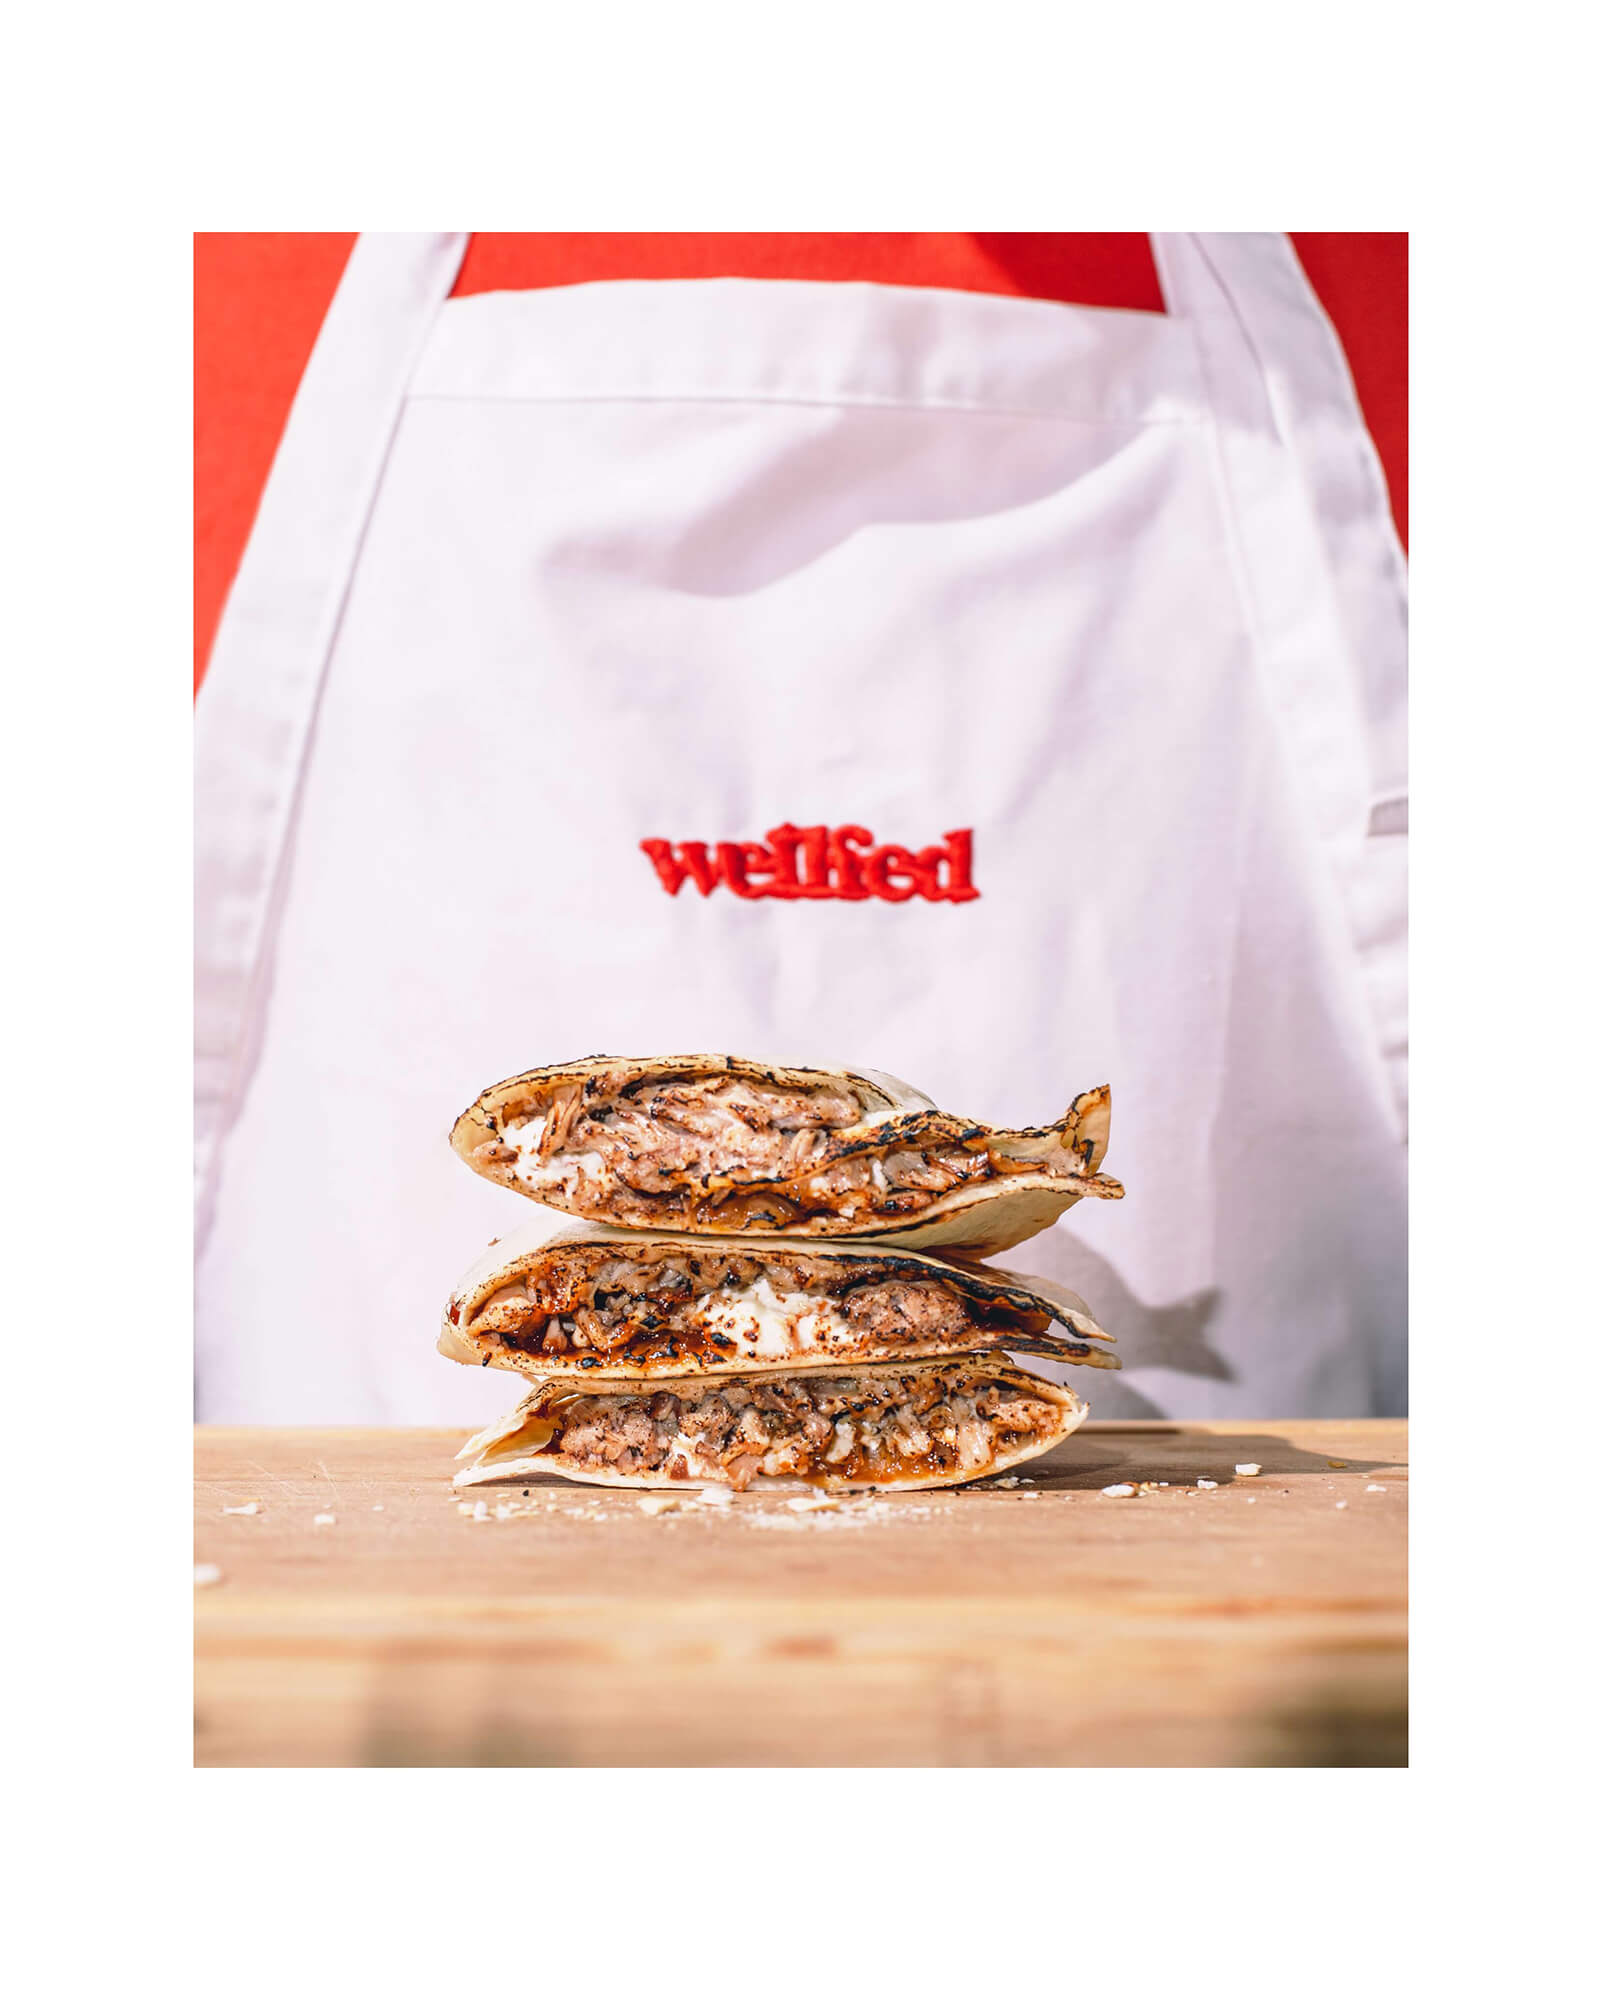 Wellfed Brand Design Art Direction